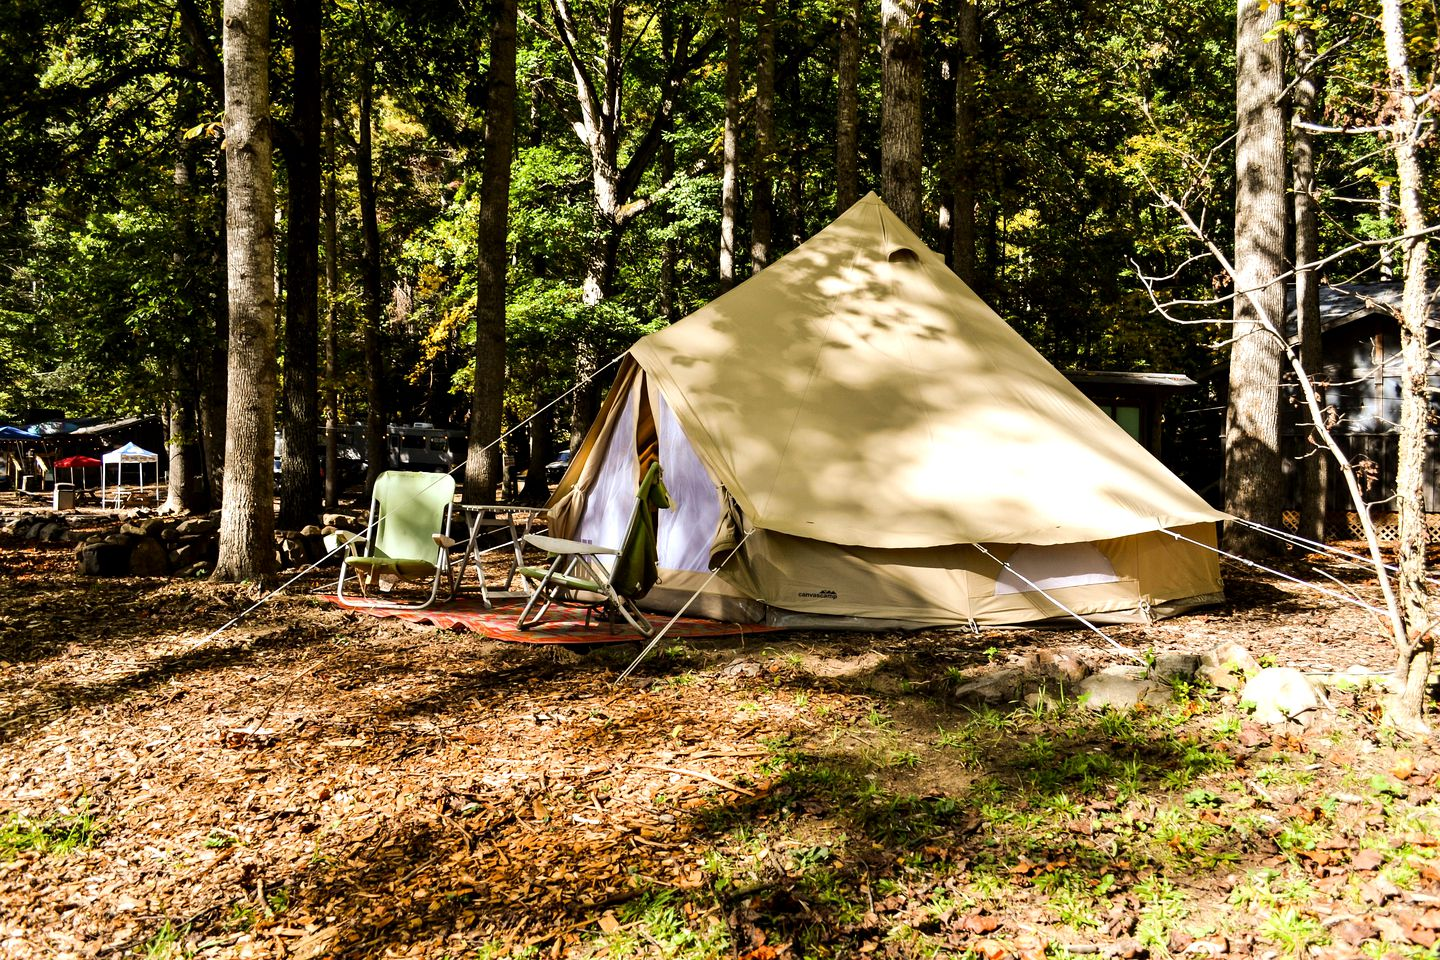 Bell tent rental for glamping in Tennessee